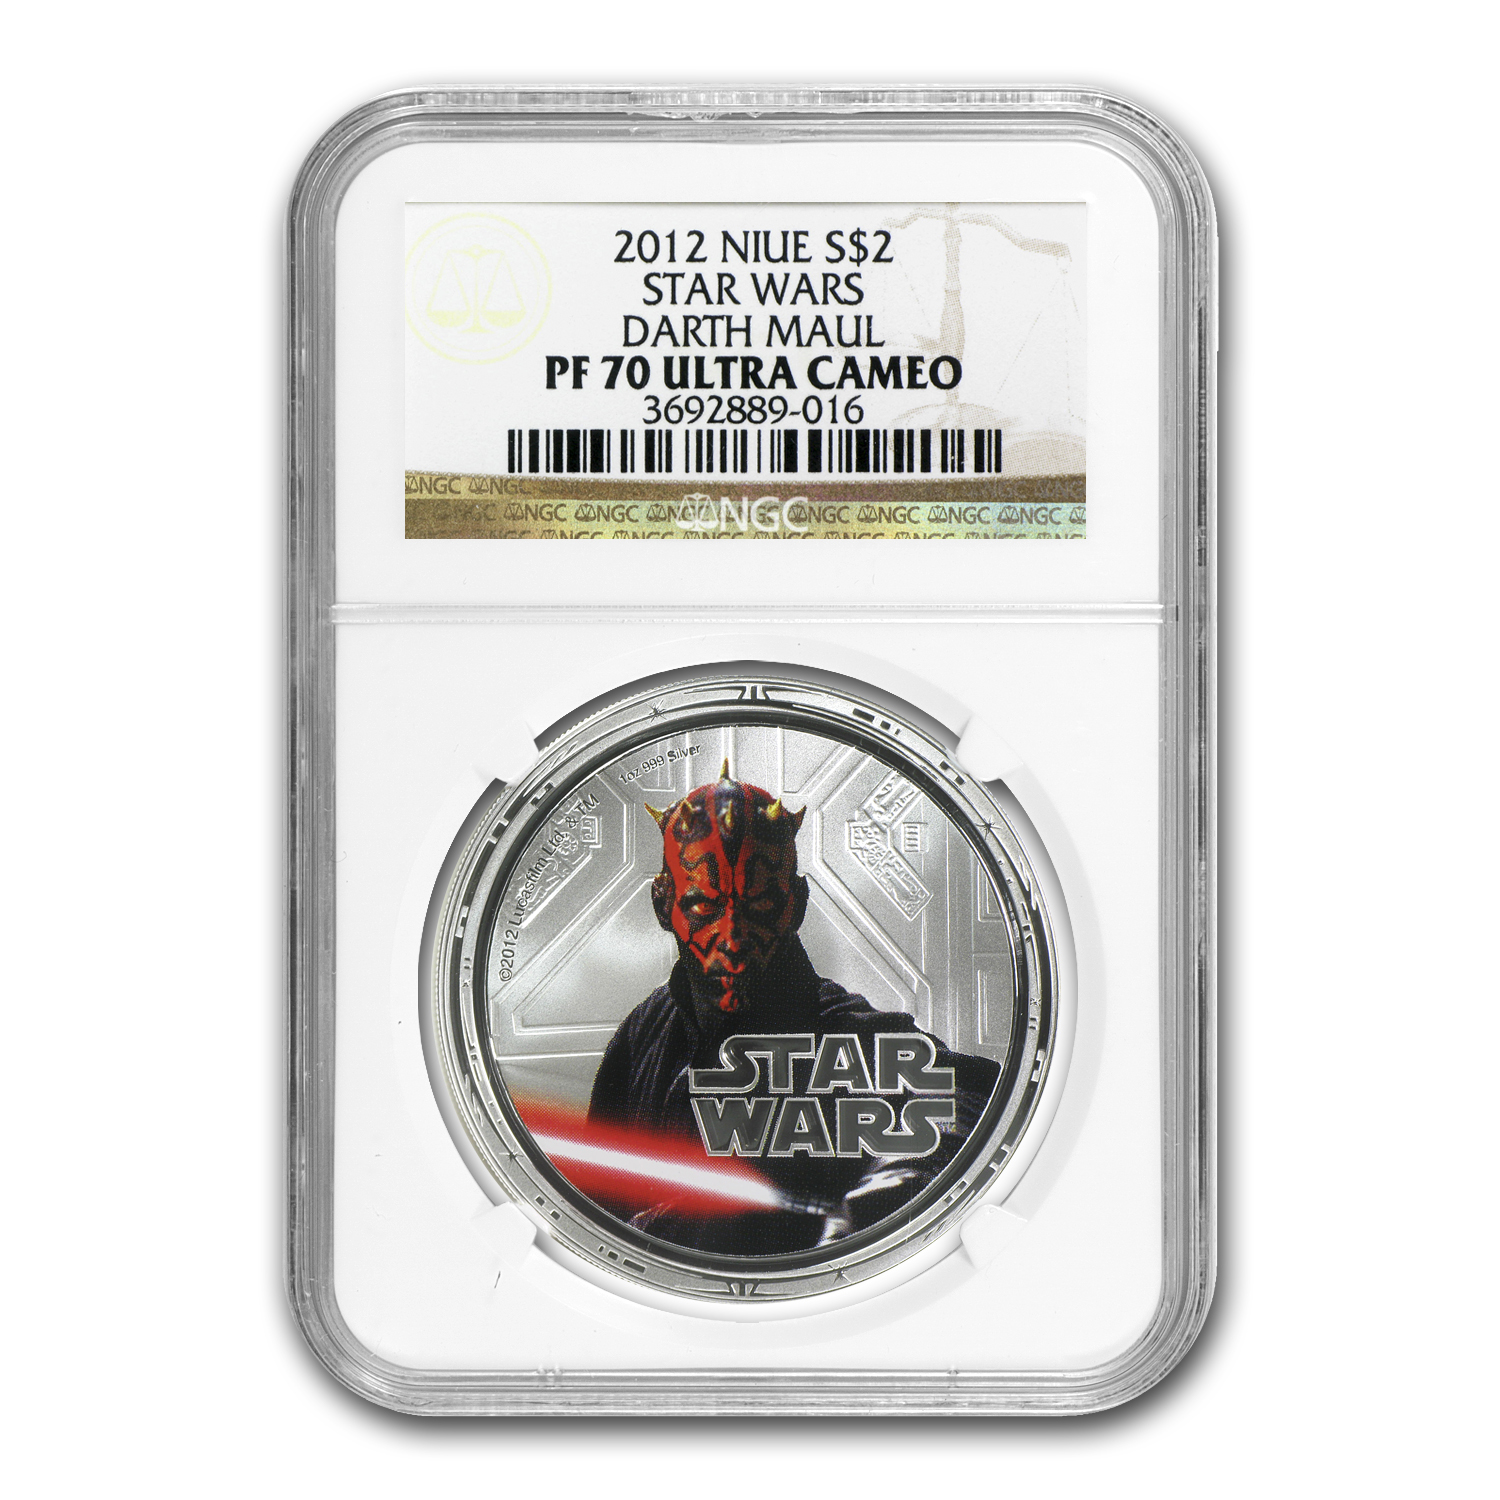 2012 Niue 1 oz Silver $2 Star Wars Darth Maul PF-70 NGC